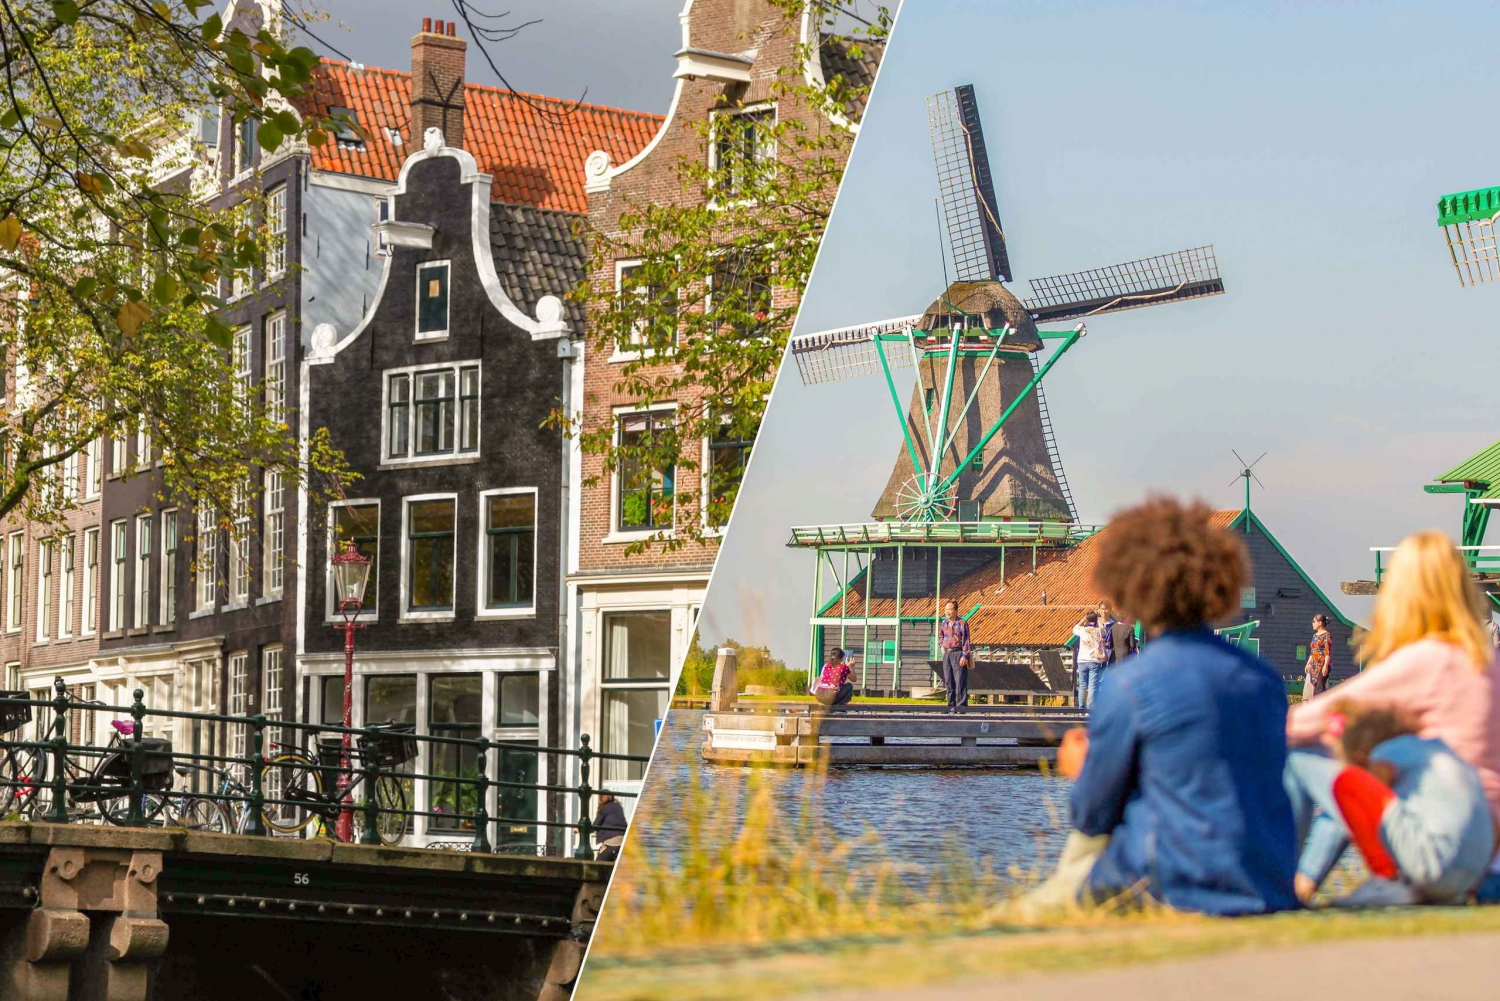 Marken, Volendam, Windmills & Amsterdam Combination Tour